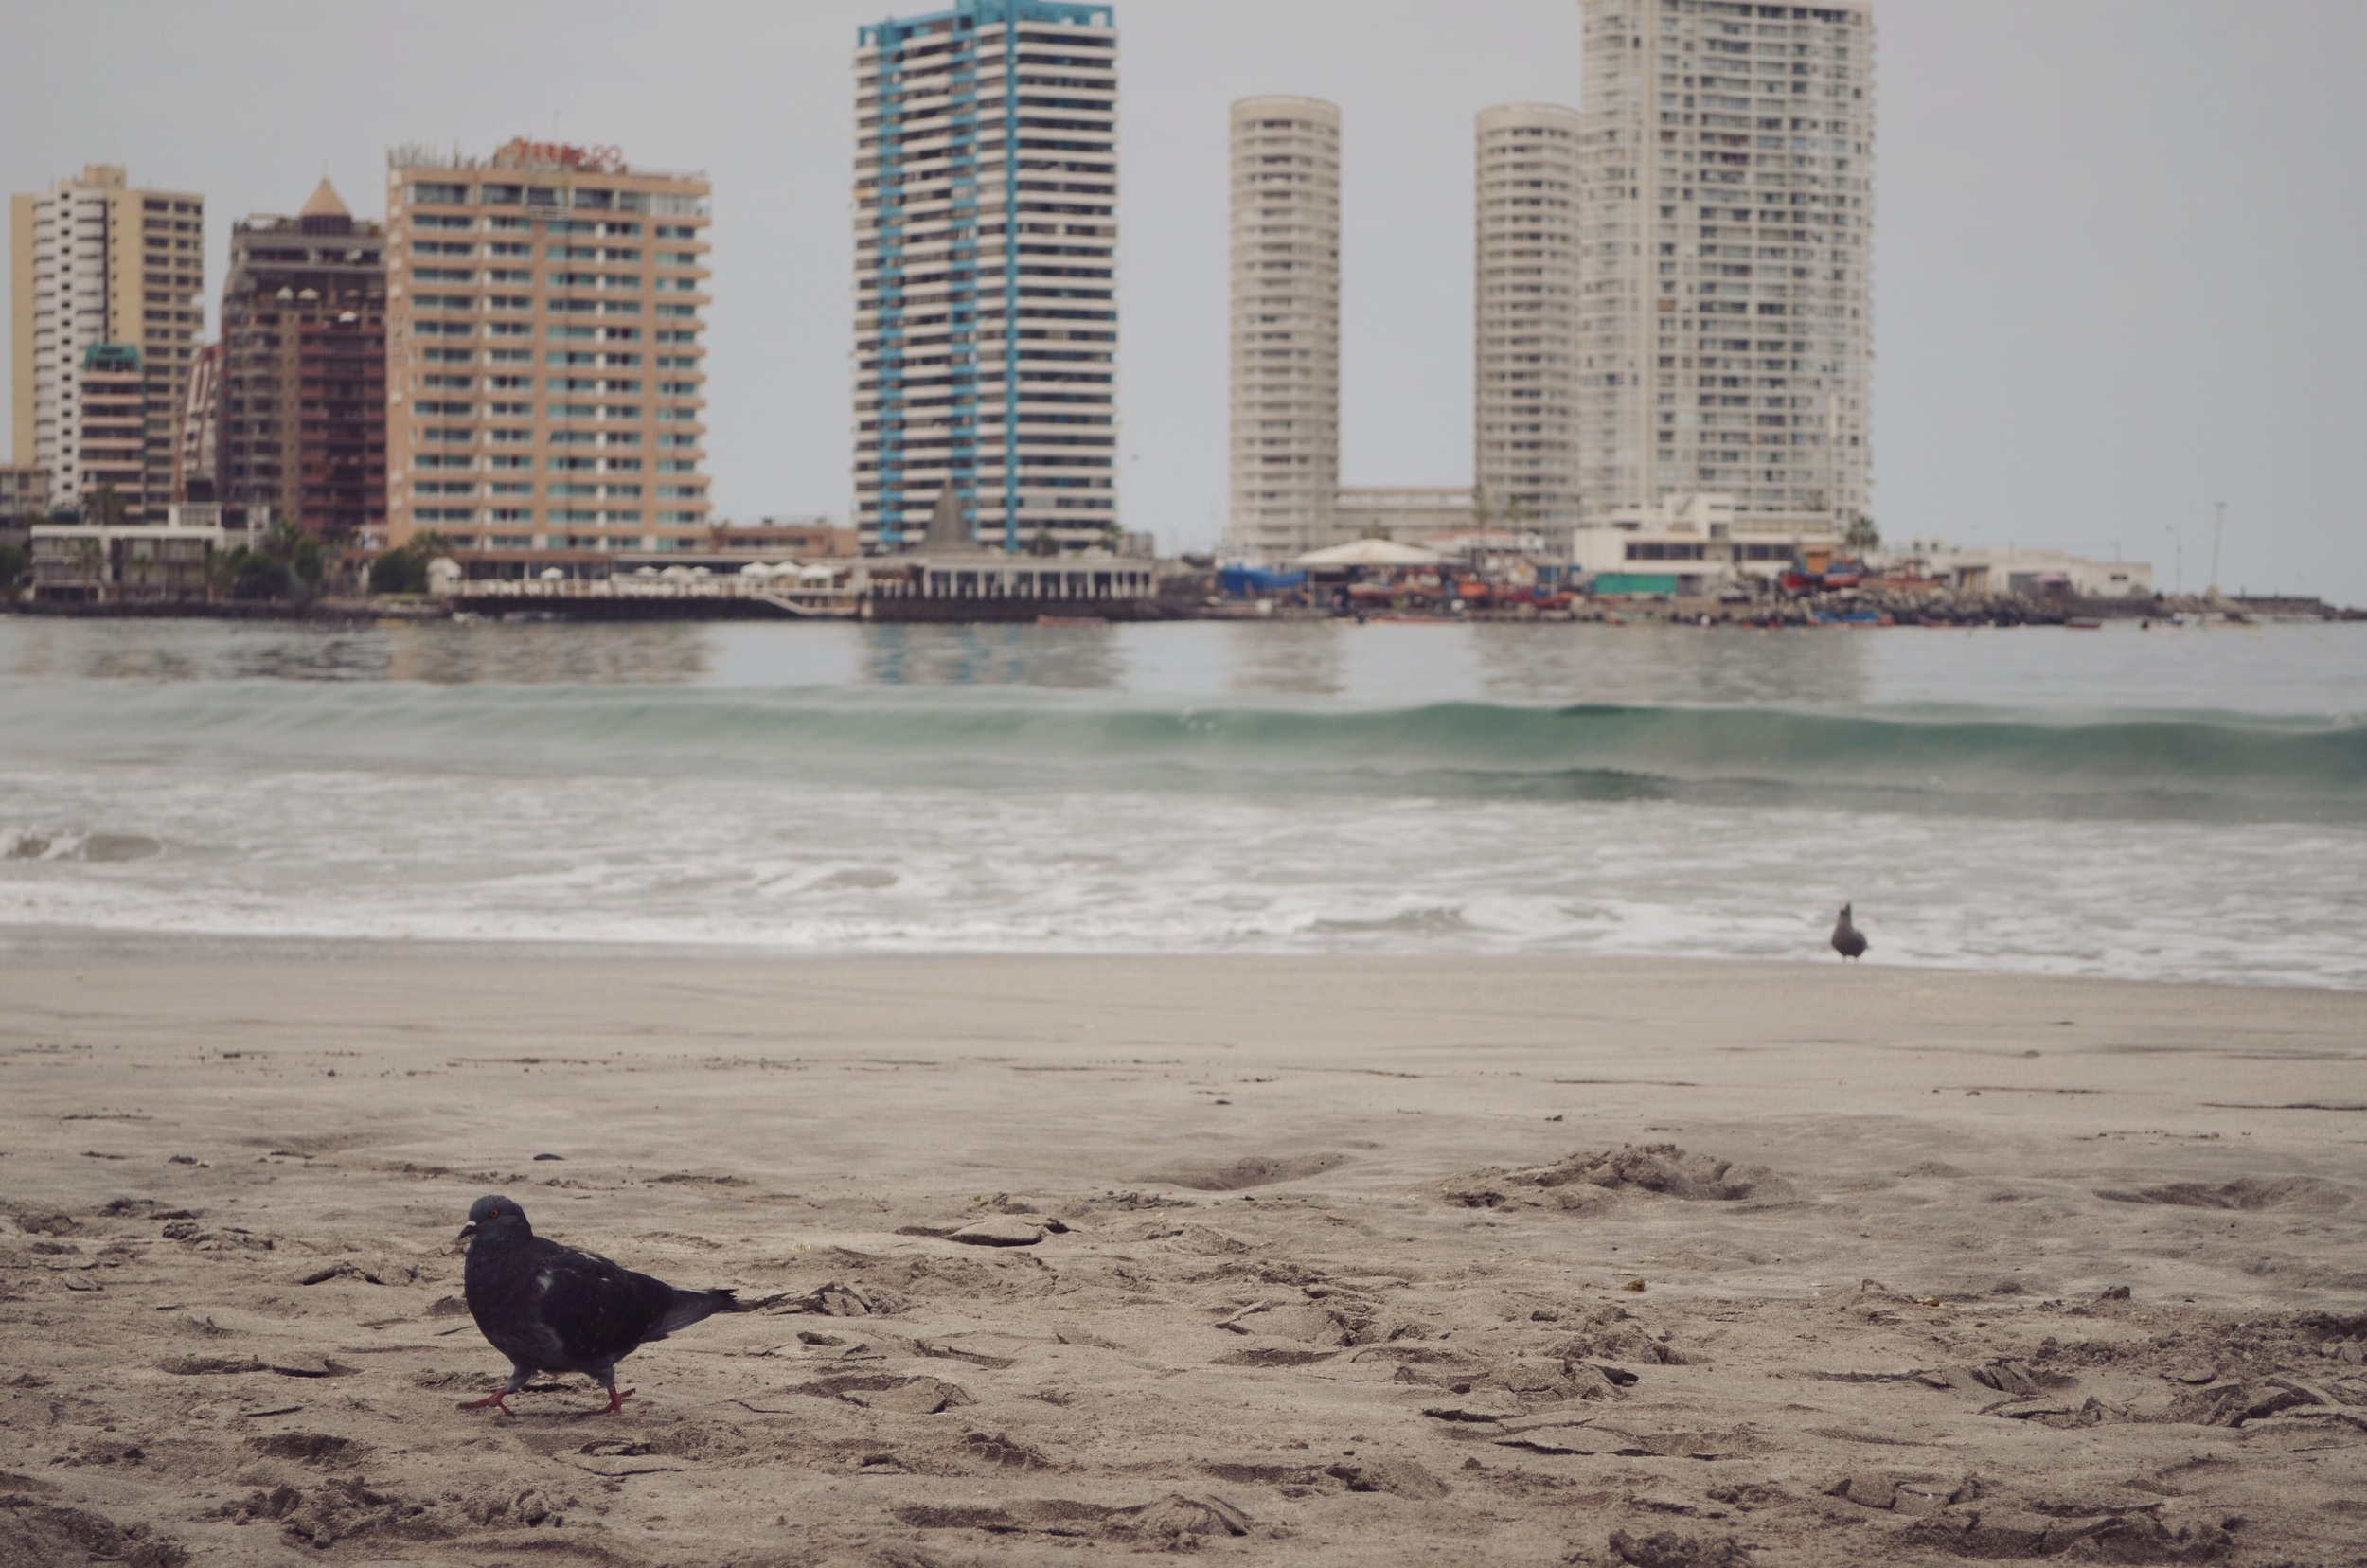 Mister pigeon on a cloudy morning shoreline // 5 april 2015